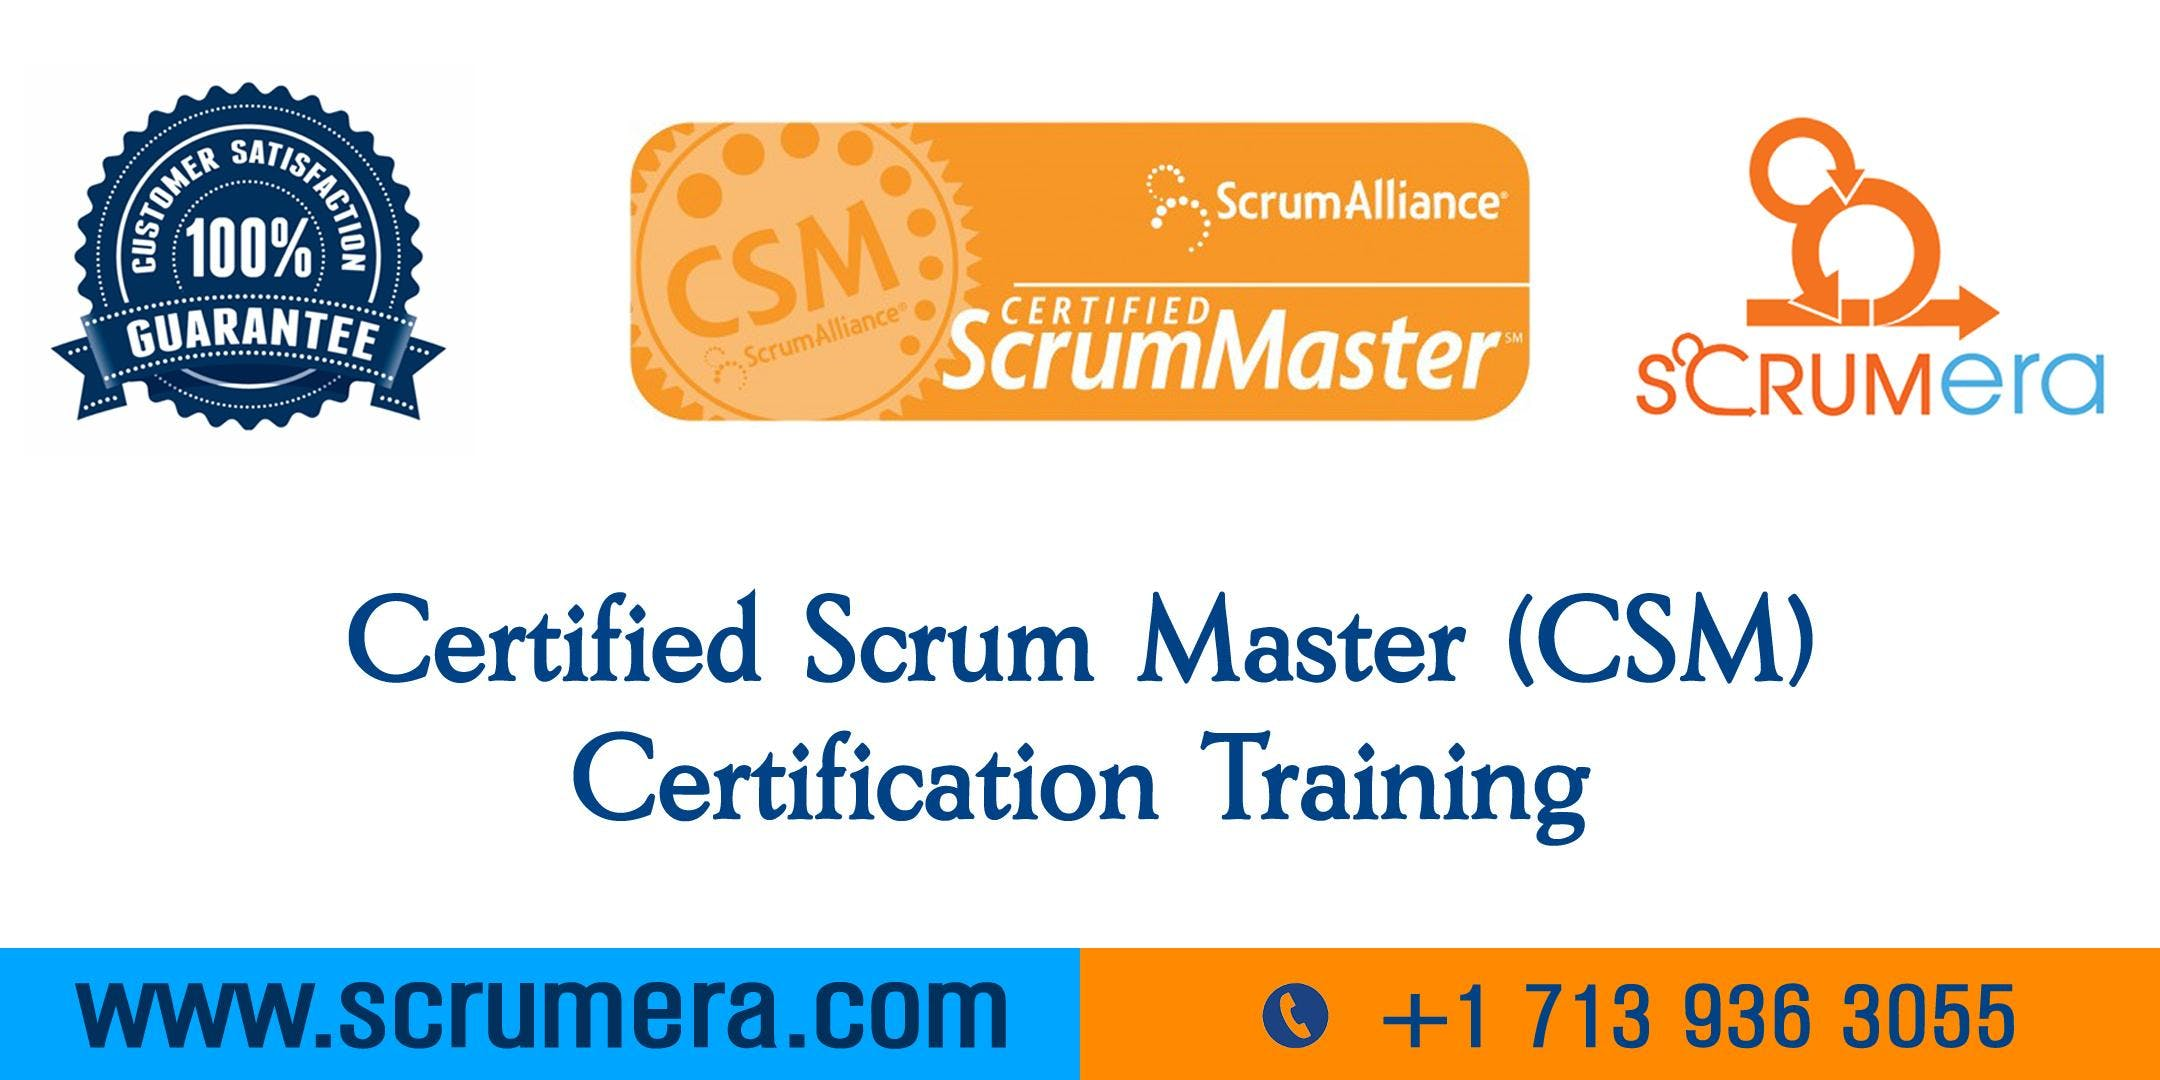 Scrum Master Certification | CSM Training | CSM Certification Workshop | Certified Scrum Master (CSM) Training in Kent, WA | ScrumERA